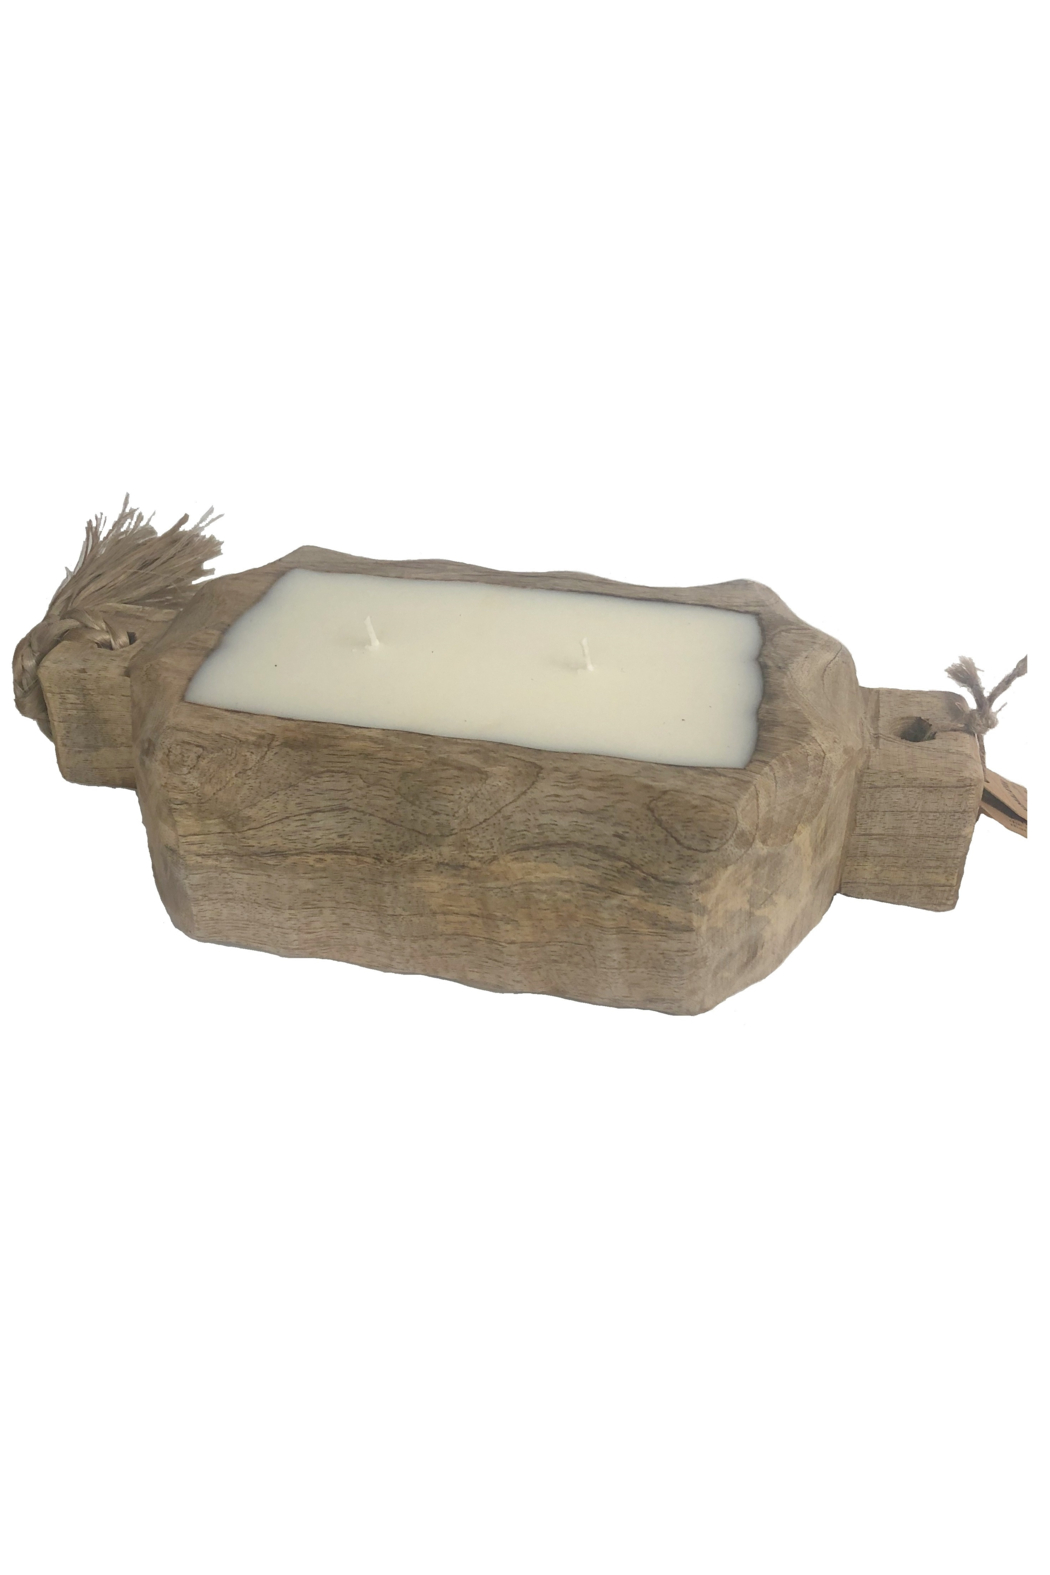 Himalayan Trading Post Small Driftwood Tray- GRAPEFRUIT PINE - Front Cropped Image